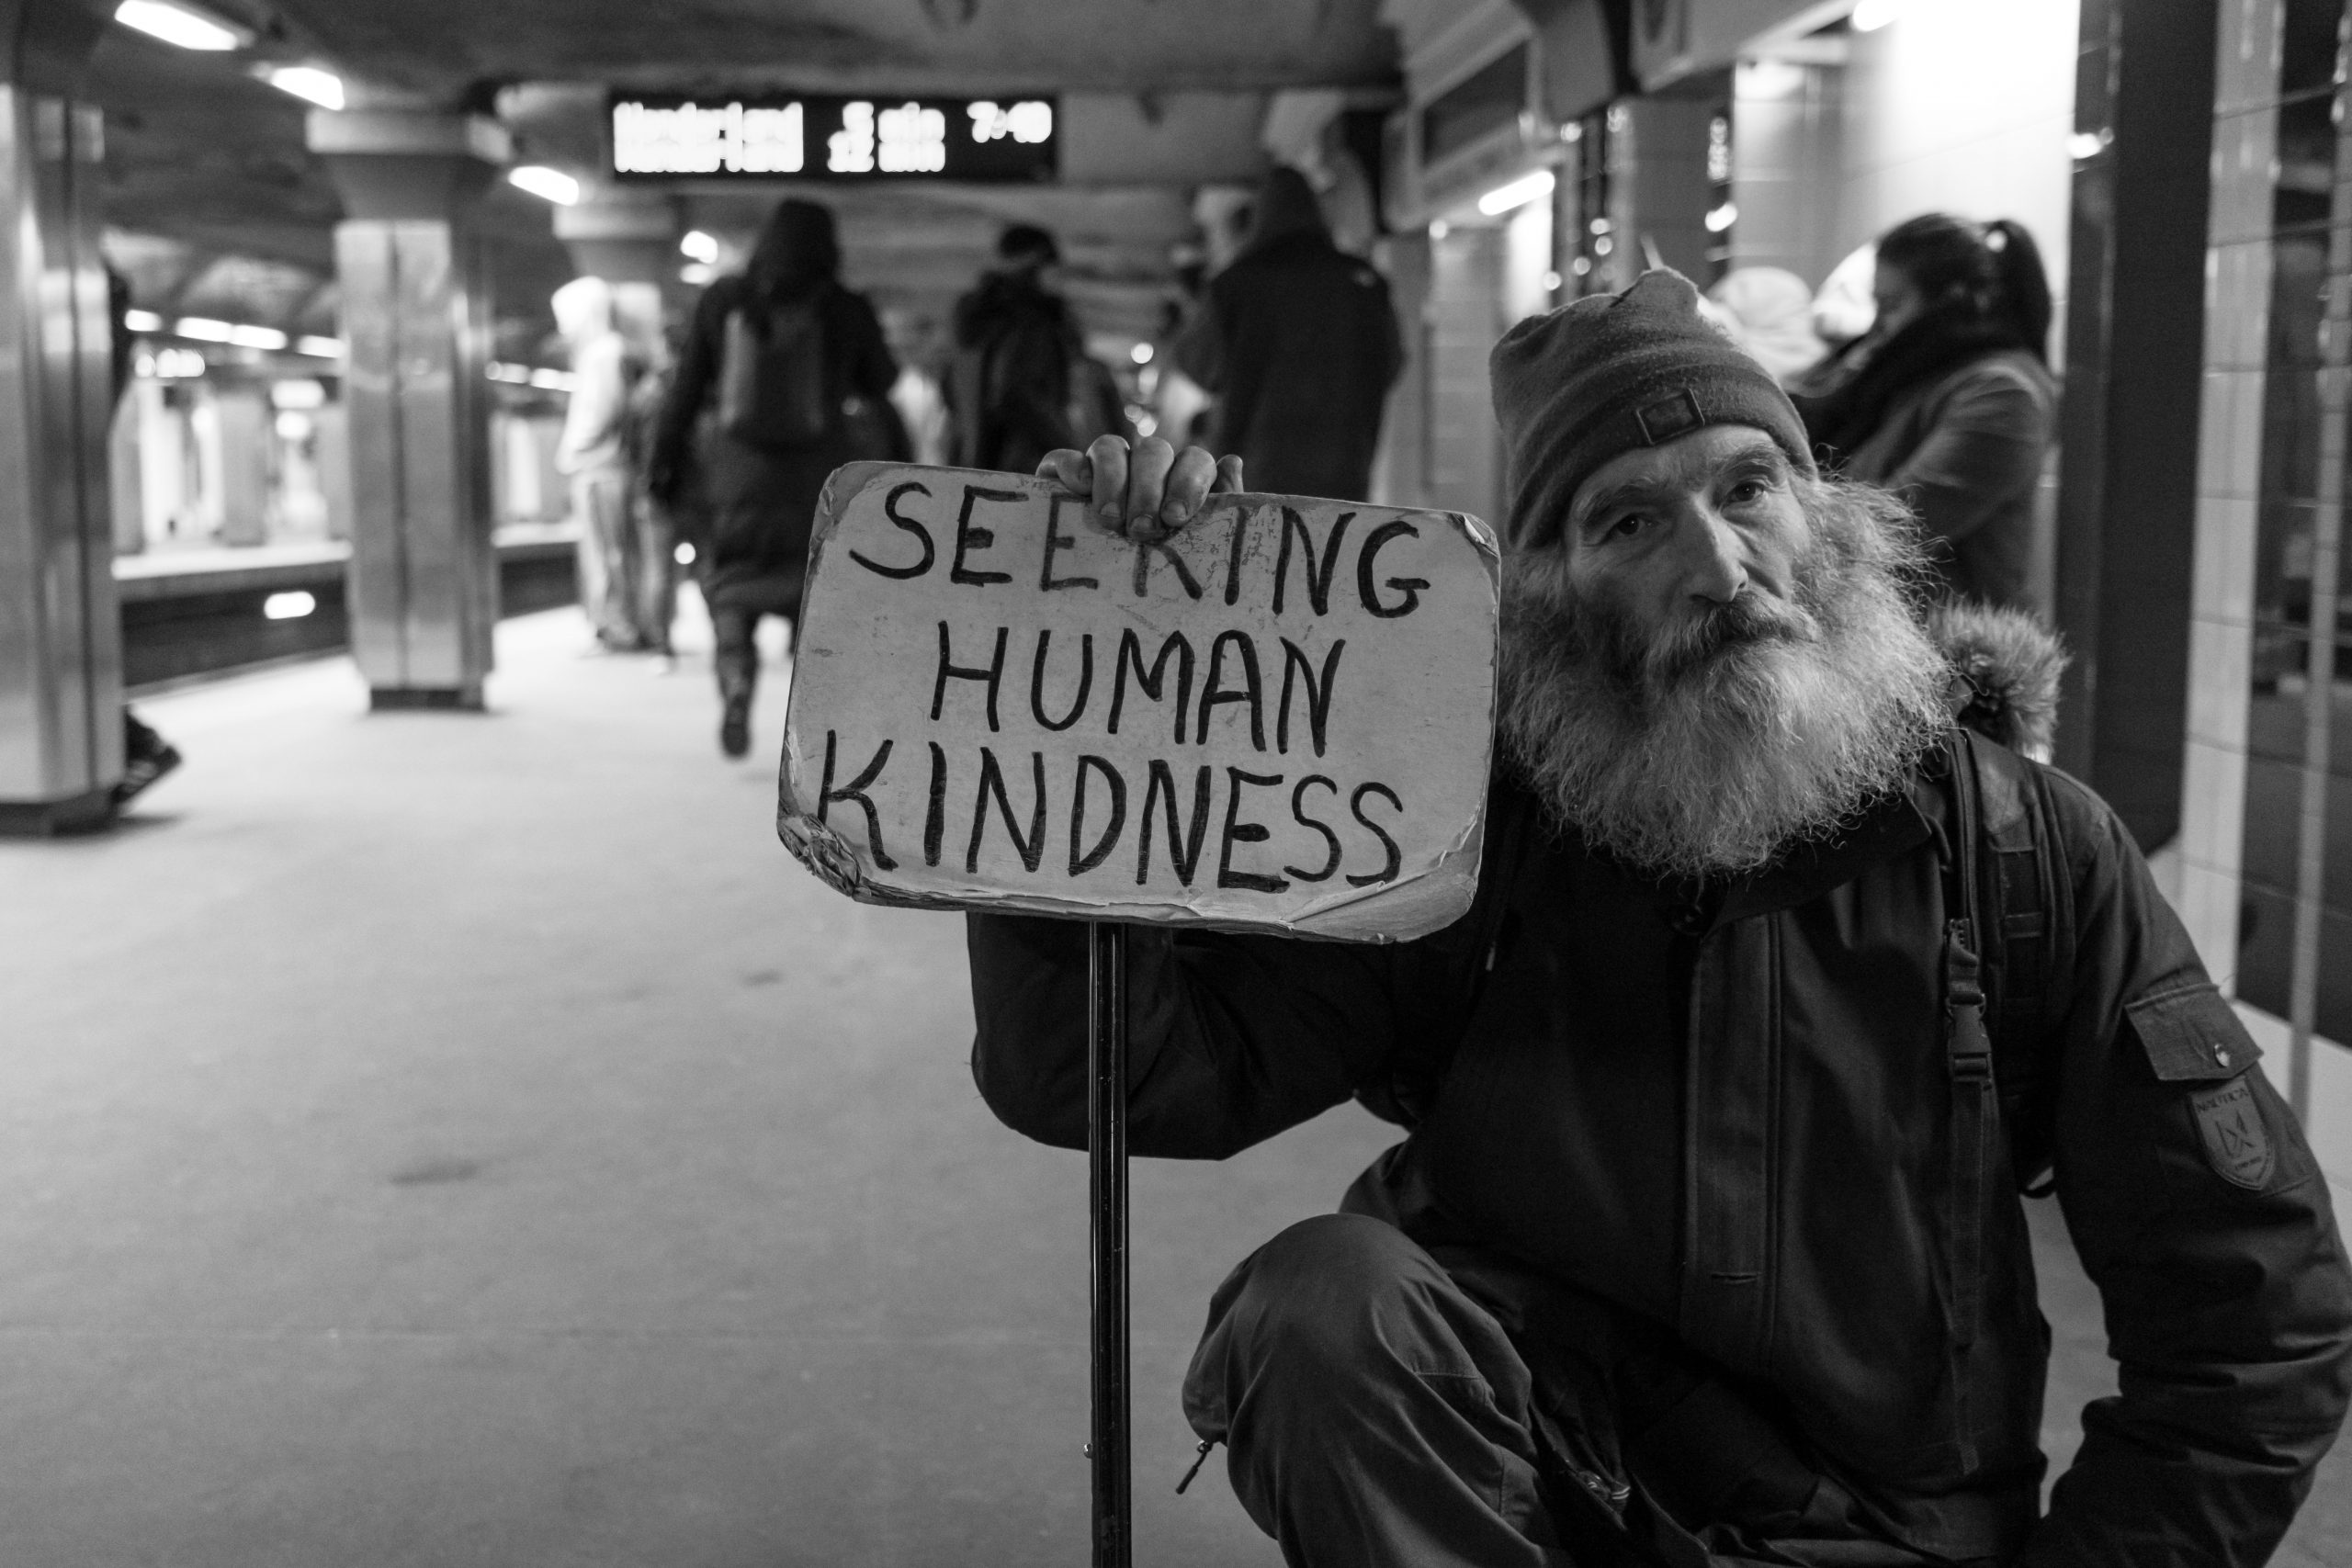 A homeless eprson with a sign that reads 'seeking human kindness'.